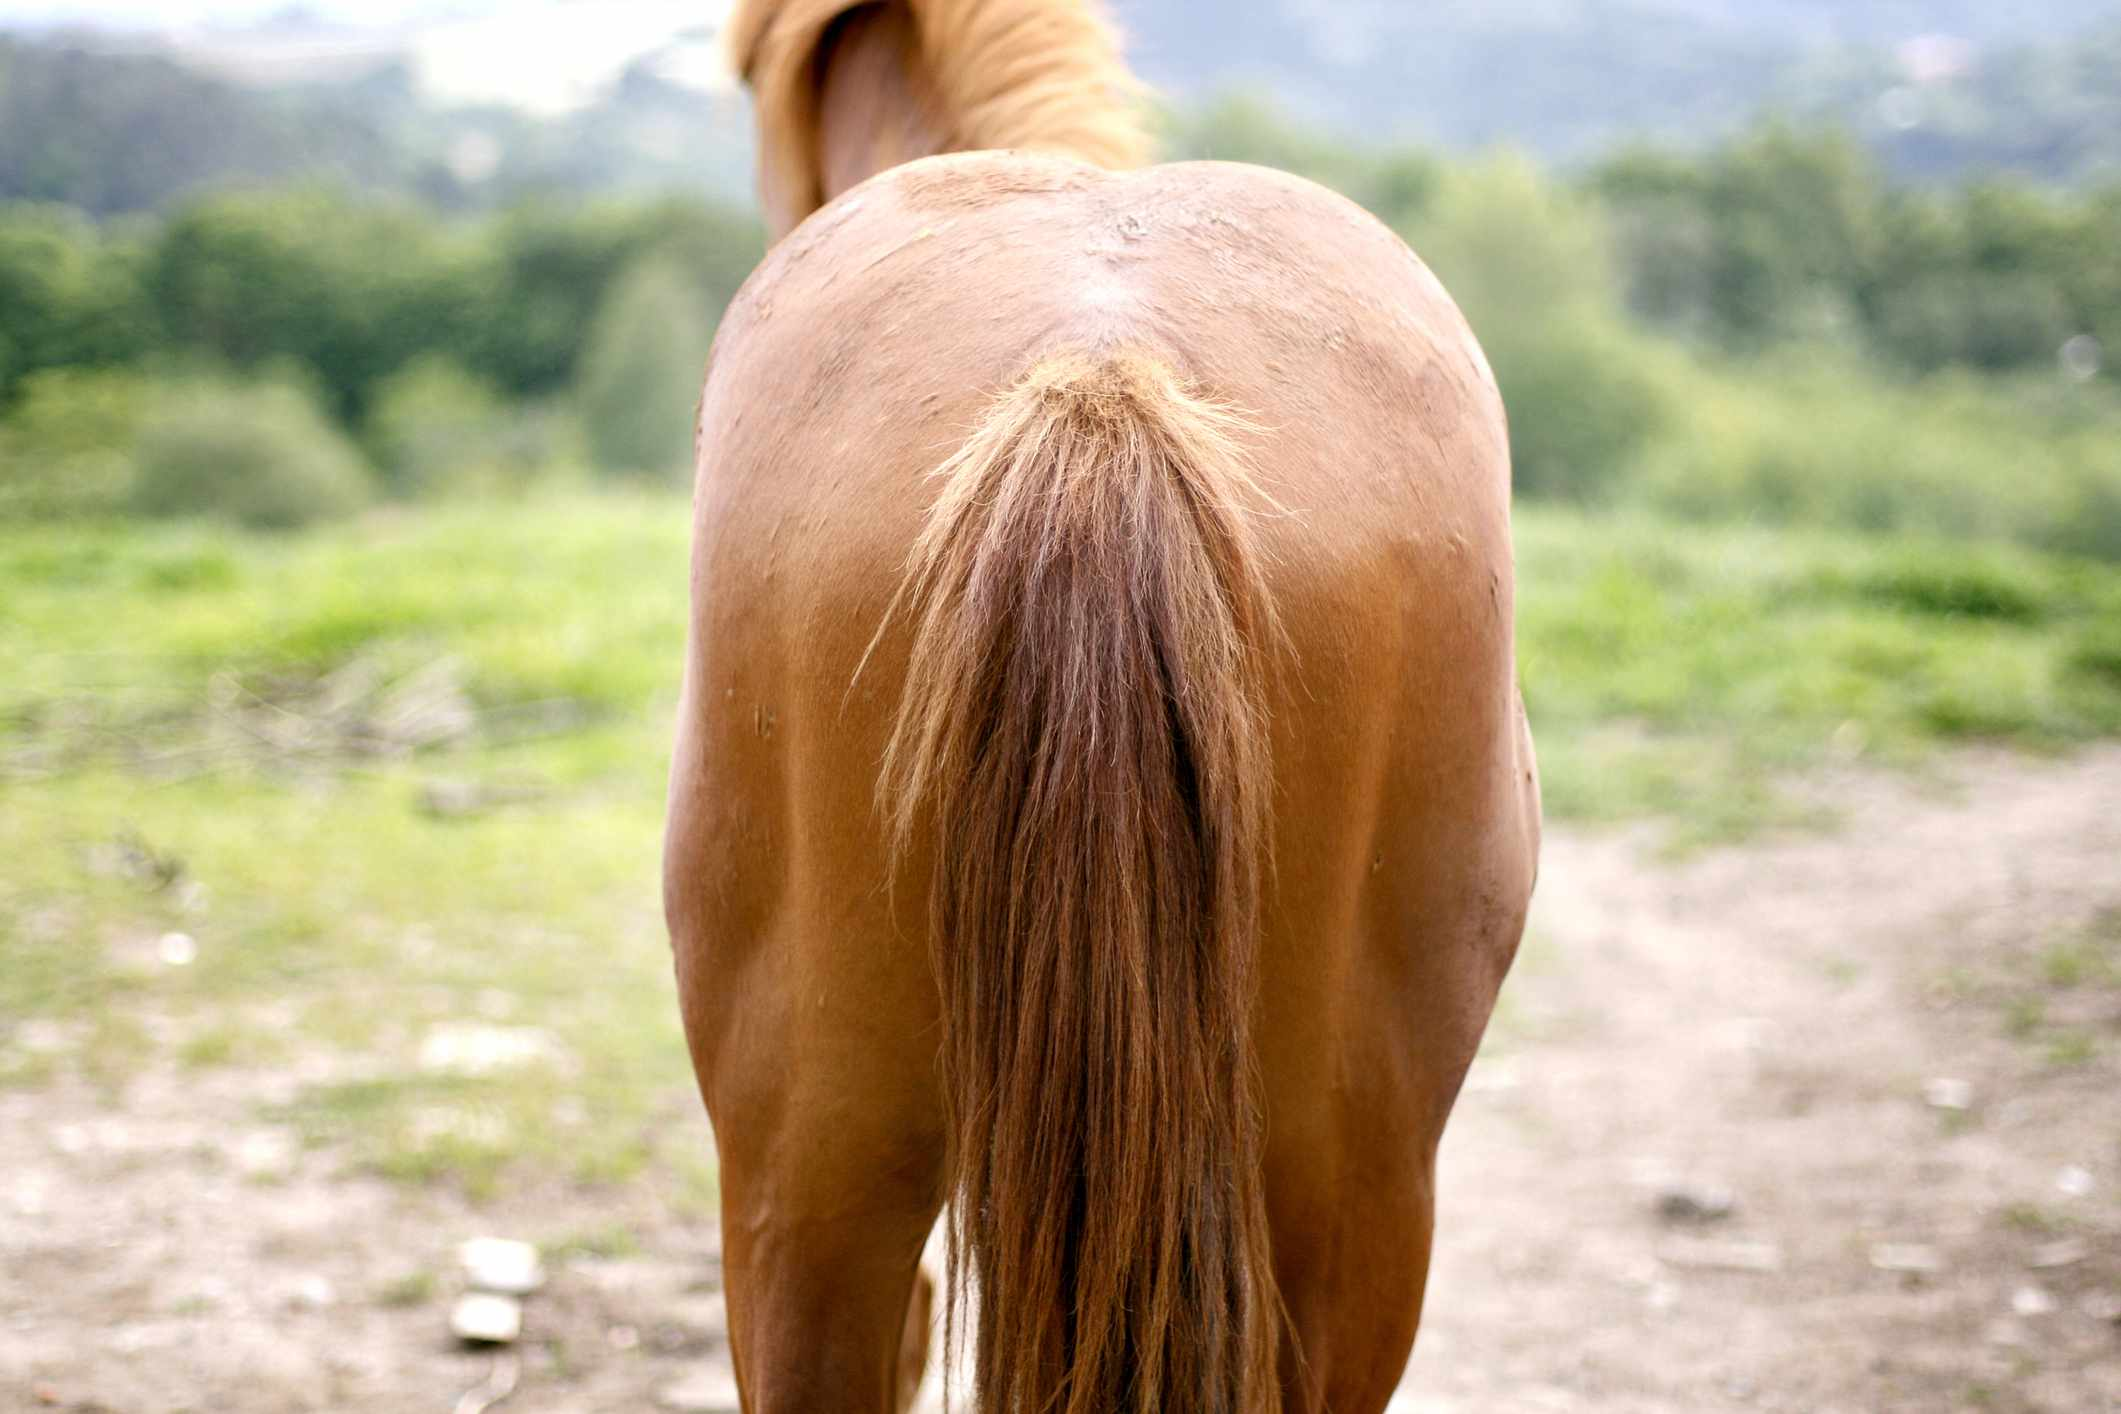 A horse's tail